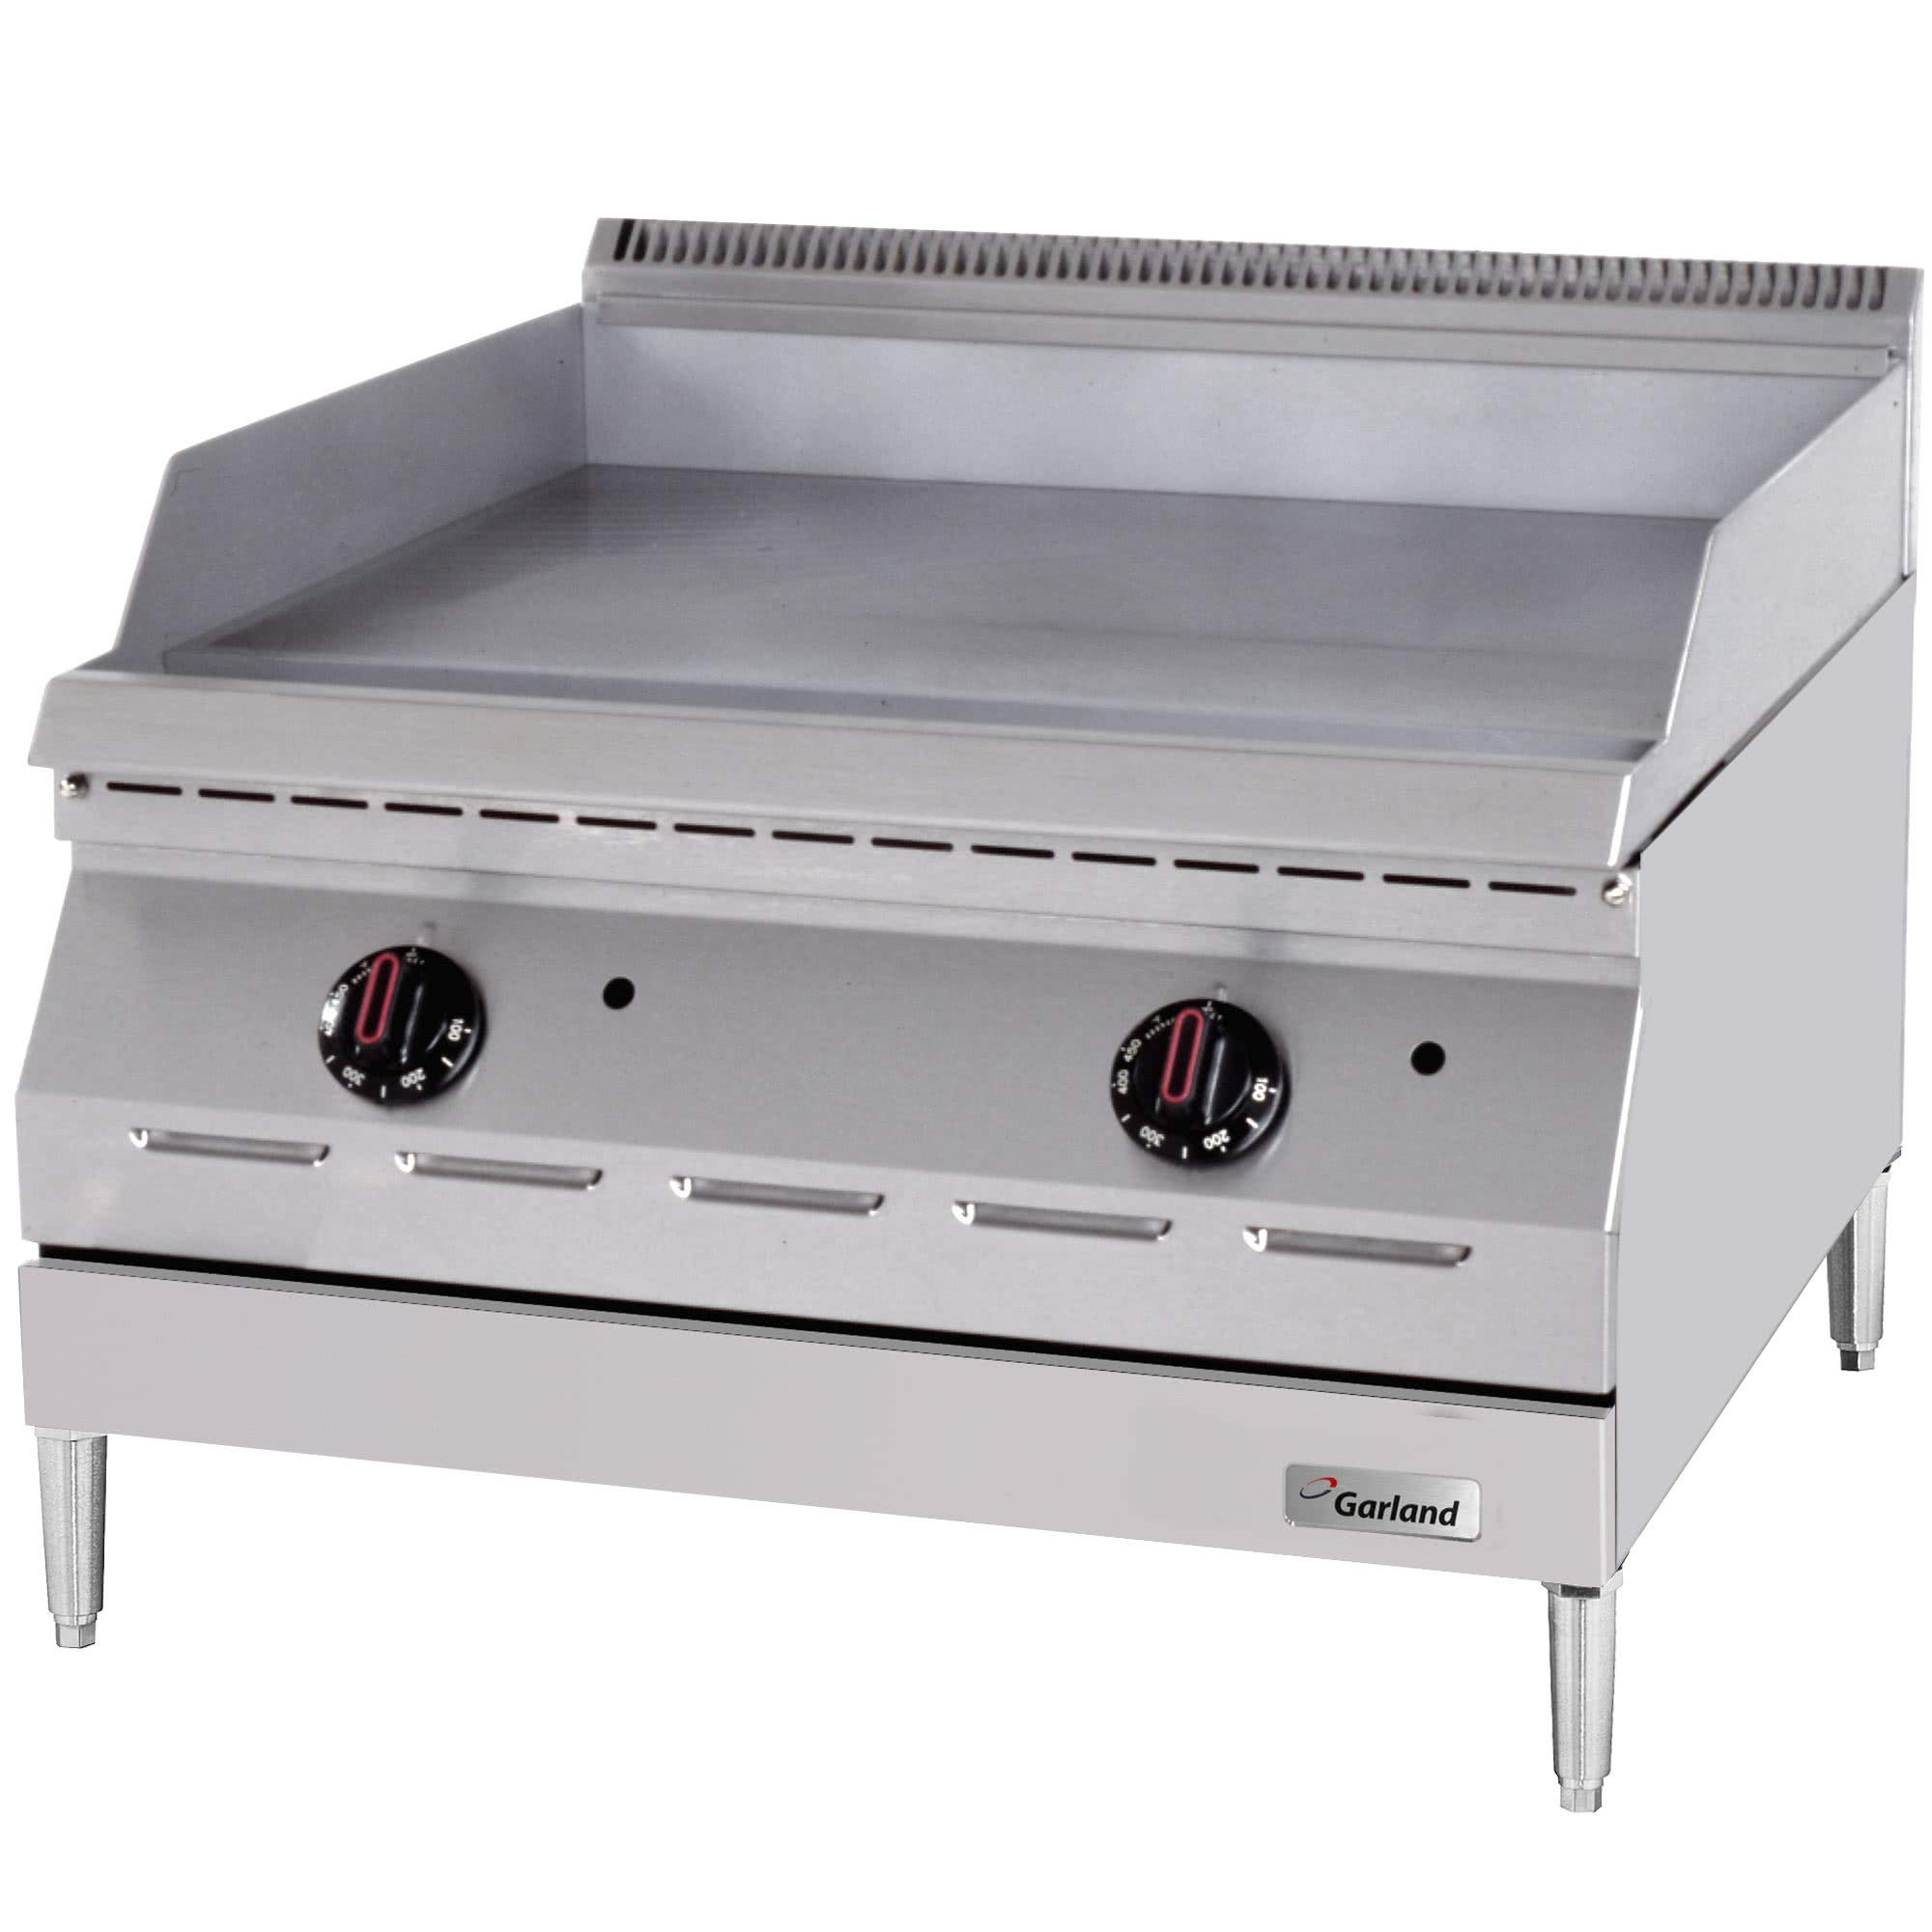 TableTop King GD-24GTH Designer Series Liquid Propane 24'' Countertop Griddle with Thermostatic Controls - 40,000 BTU